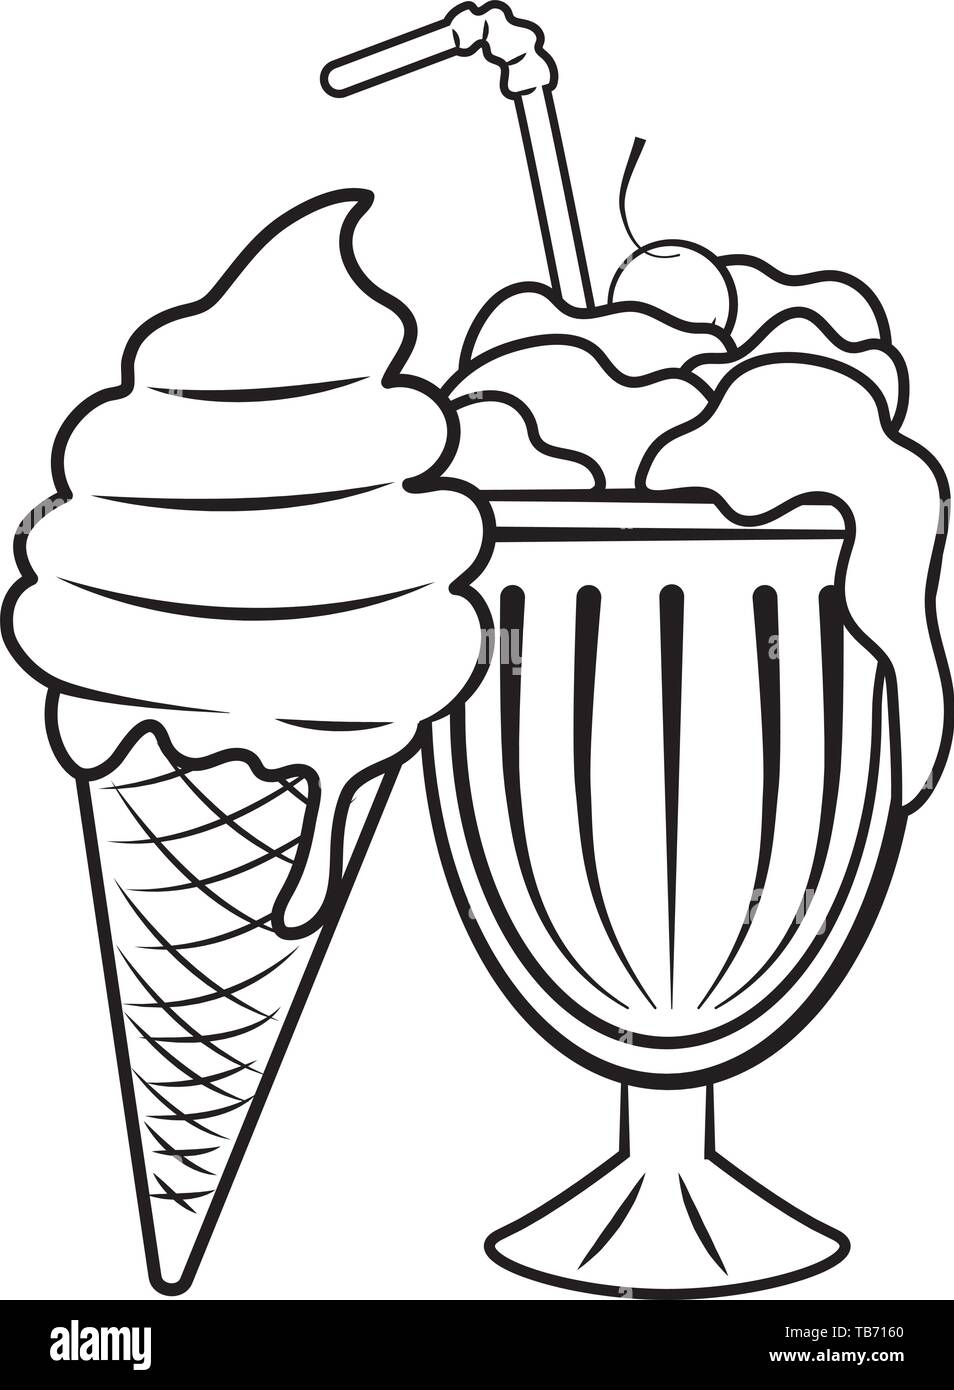 milk shake and ice cream icon cartoon black and white vector illustration graphic design stock vector image art alamy https www alamy com milk shake and ice cream icon cartoon black and white vector illustration graphic design image247860984 html